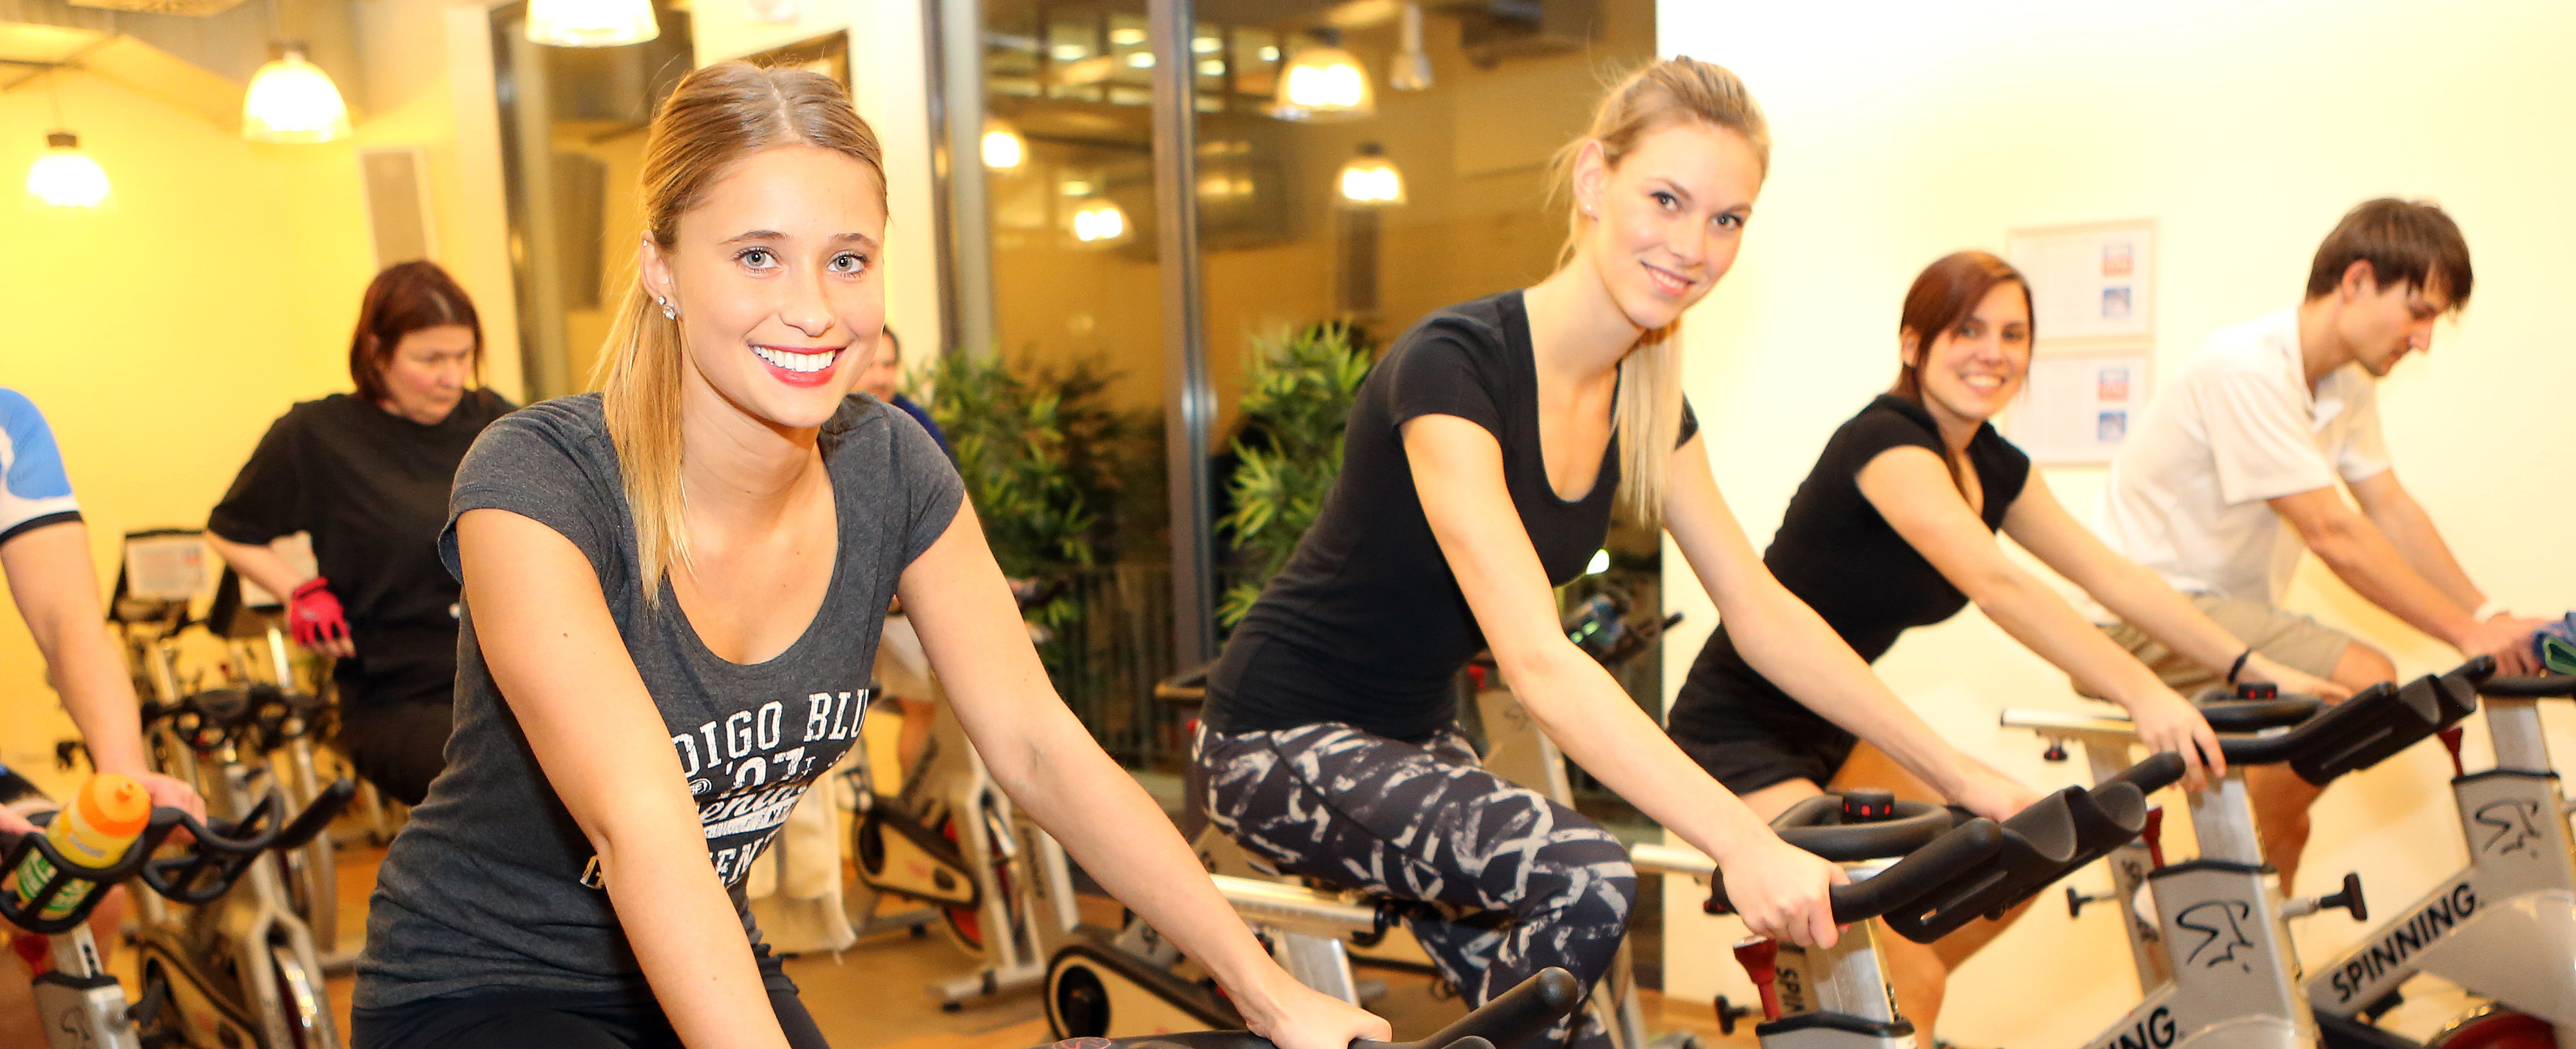 Spinning participants